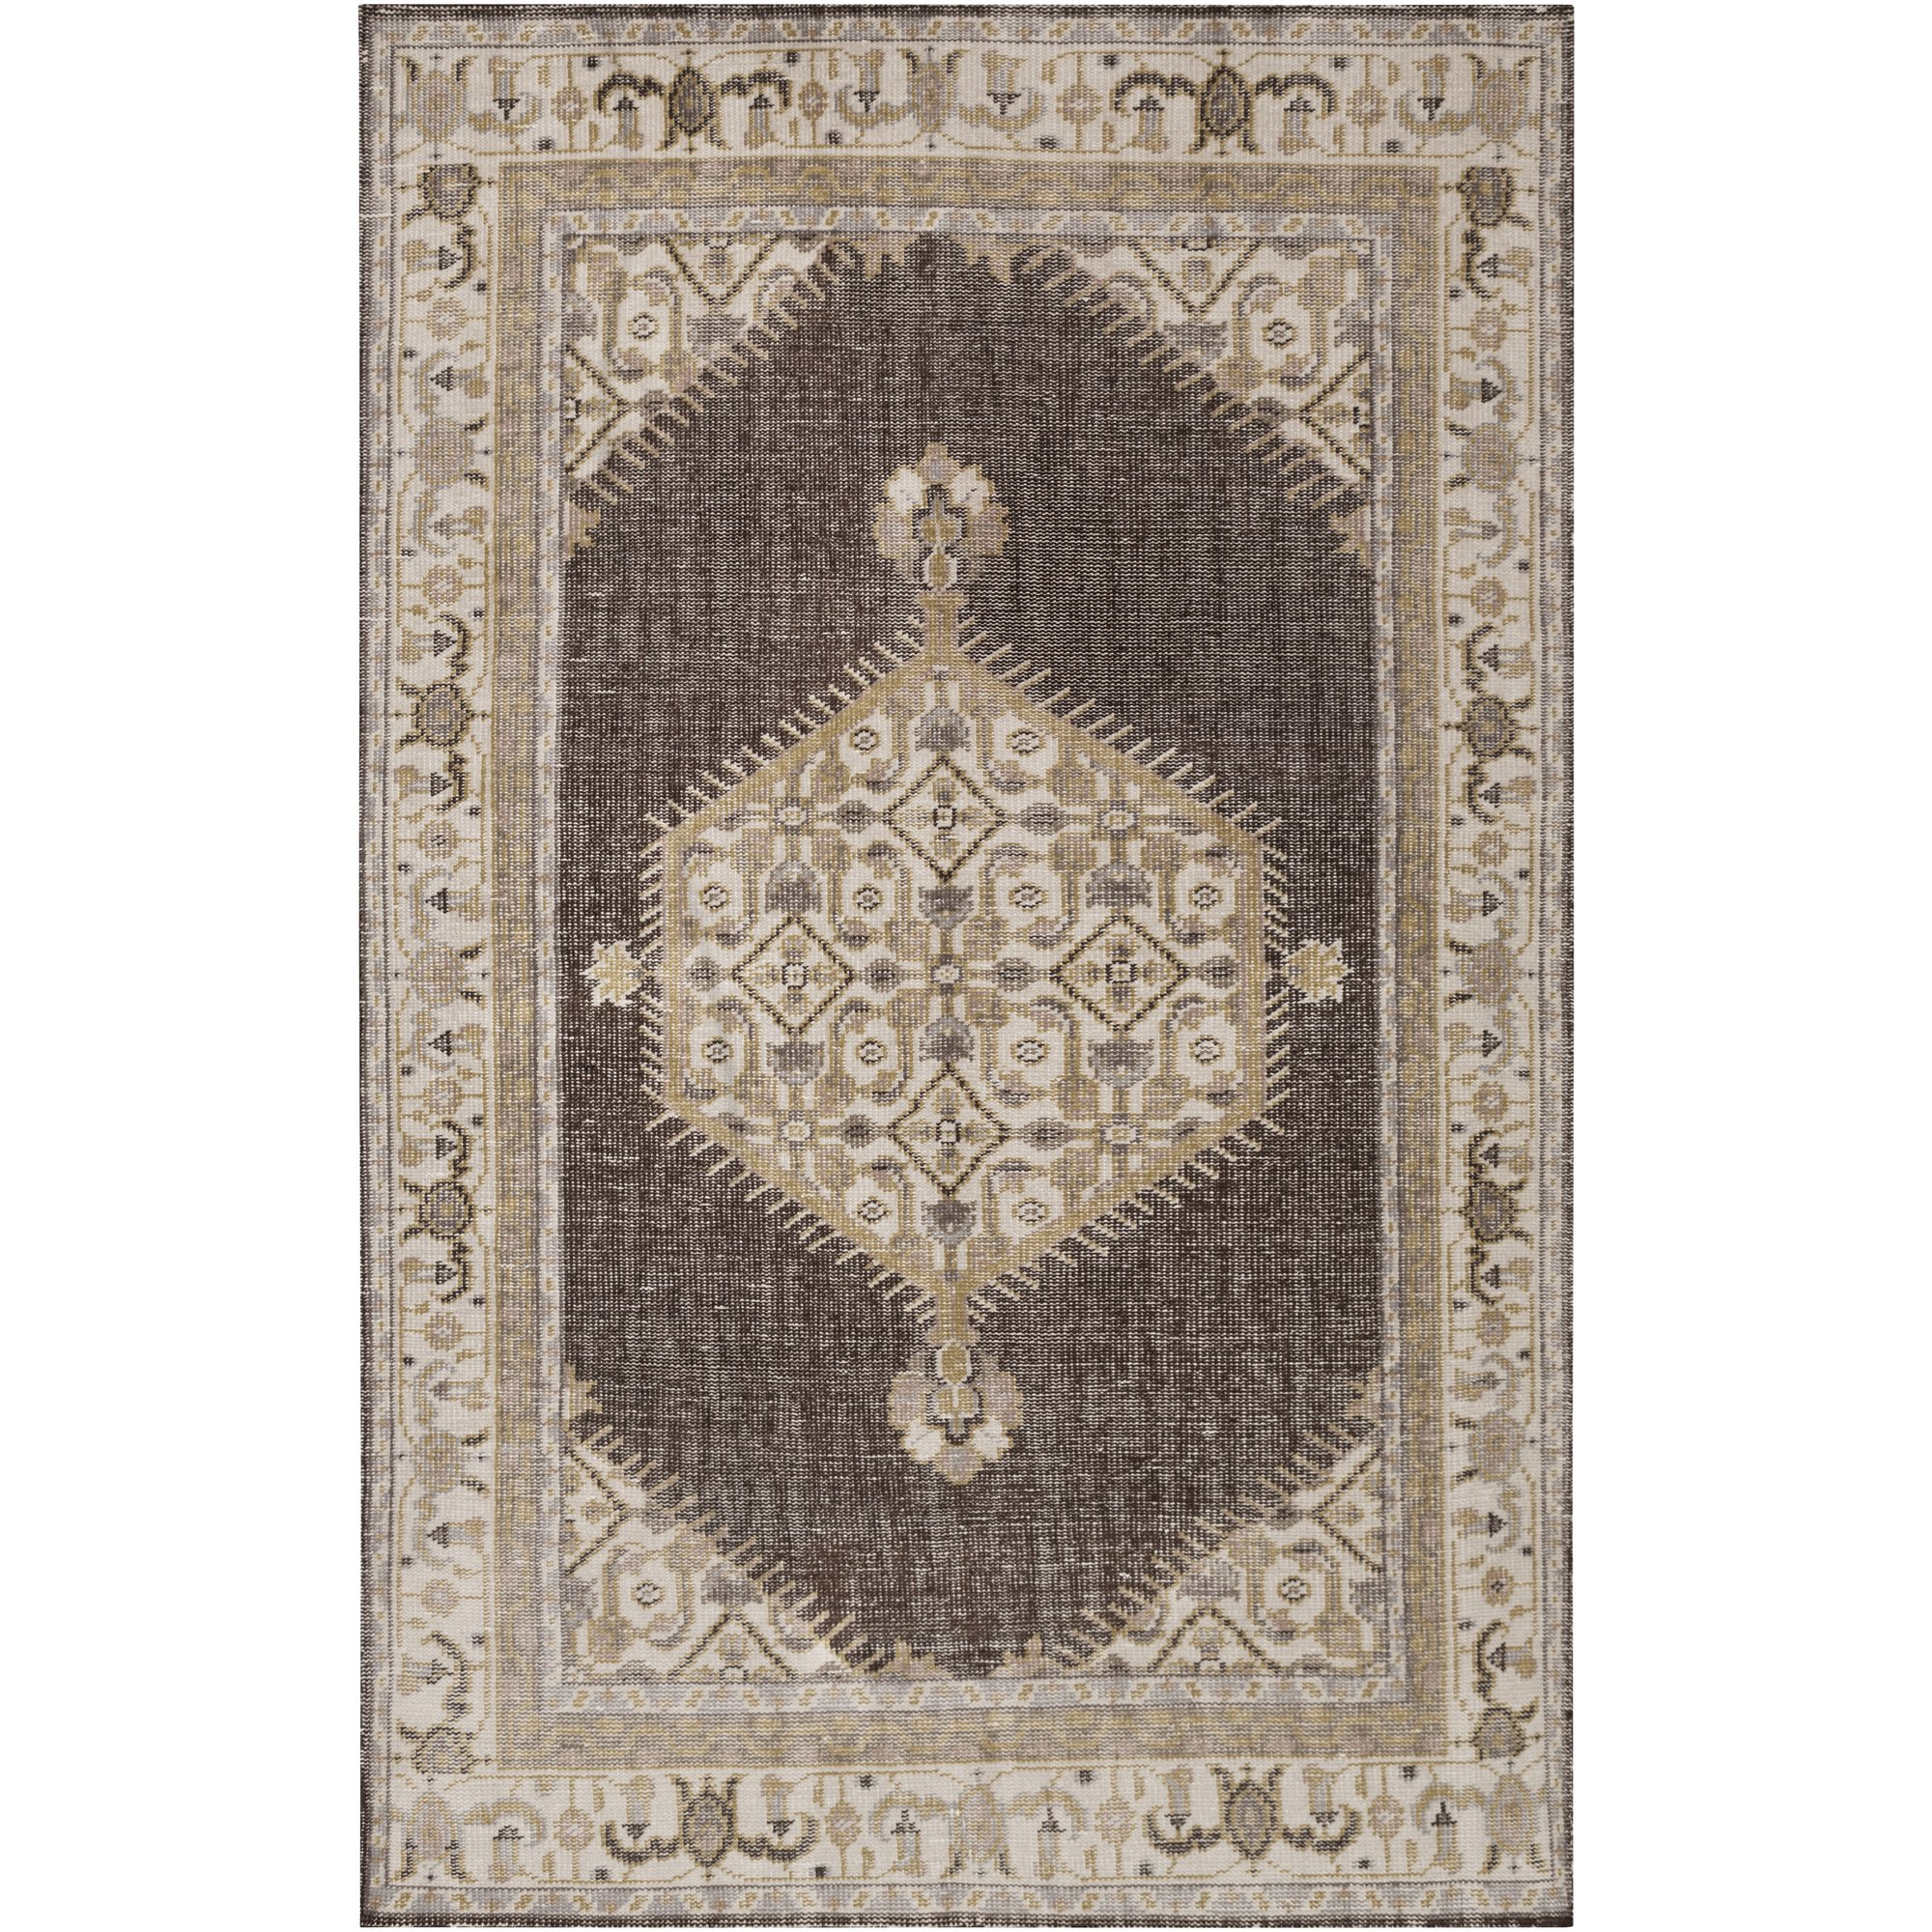 Surya Zahra ZHA-4011 Hand Knotted Classic Accent Rug, 3.6 by 5.6-Feet